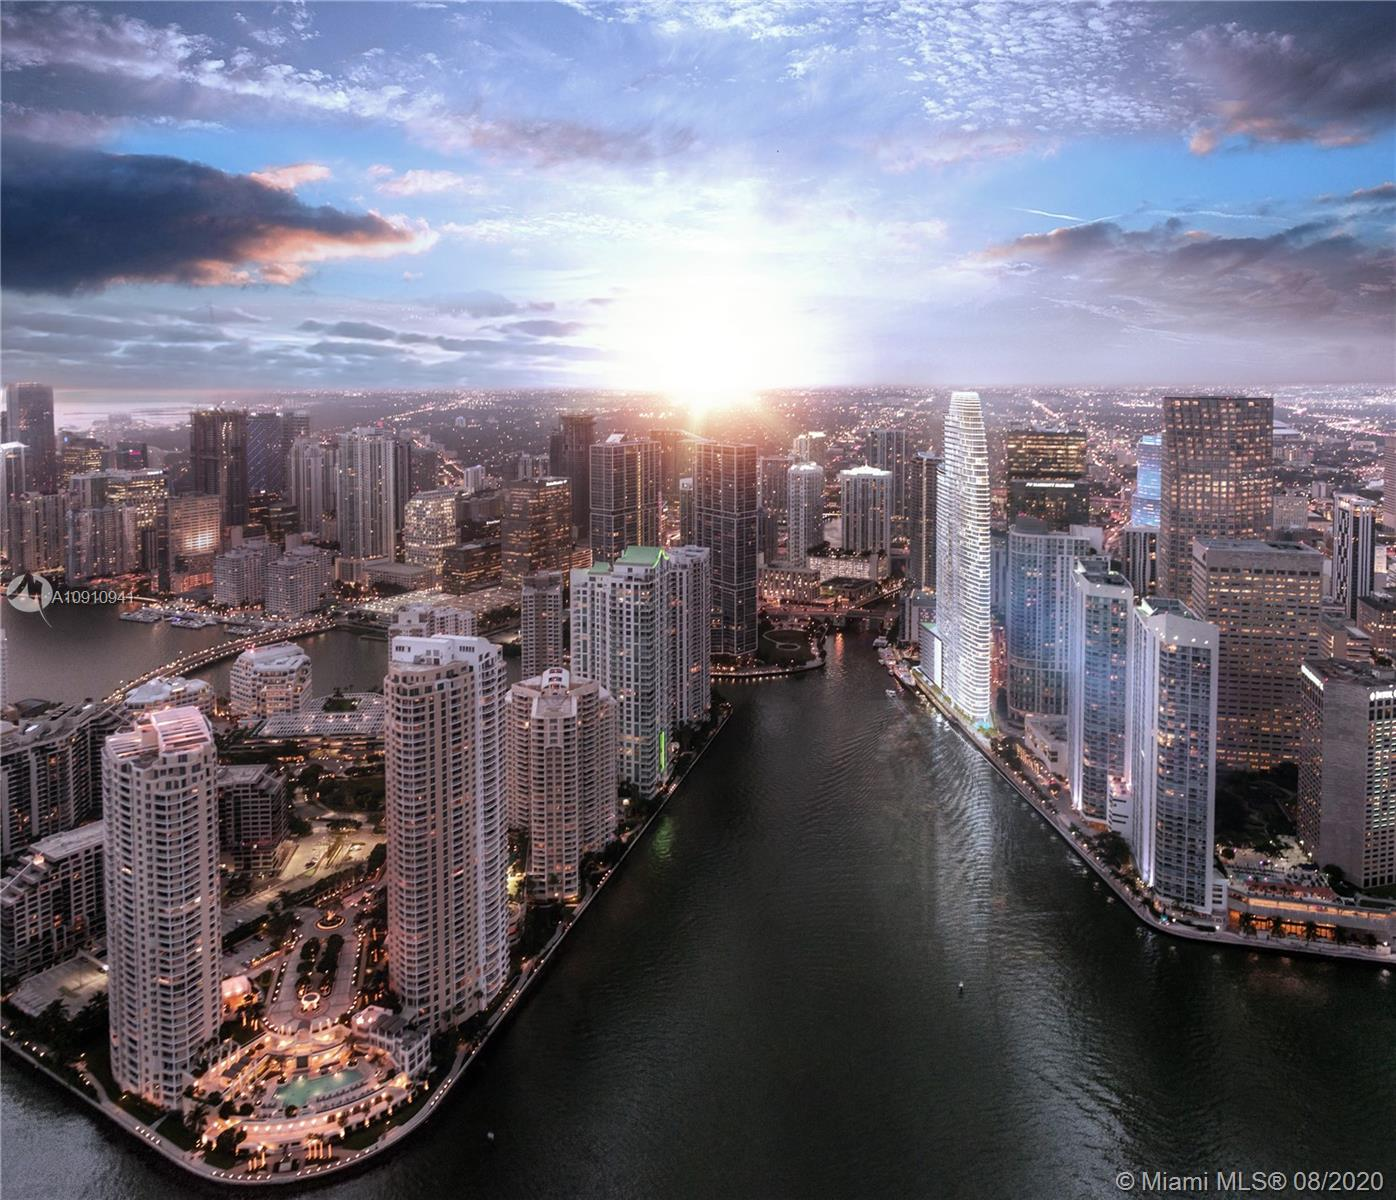 Your home in the sky. Construction is well underway. Aston Martin's first exclusively branded residential high rise with an estimated delivery in 2022. In this first exclusive development partnership with Aston Martin, the interiors are inspired by the brand's 105 year history, DNA and esthetic through subtle details and craftsmanship while taking into consideration Miami's tropical and exciting environment. The residential only tower will be over 800' as the tallest condominium tower south of NYC with 391 units, over 42,000 sq ft of sky amenities and timeless finishes.